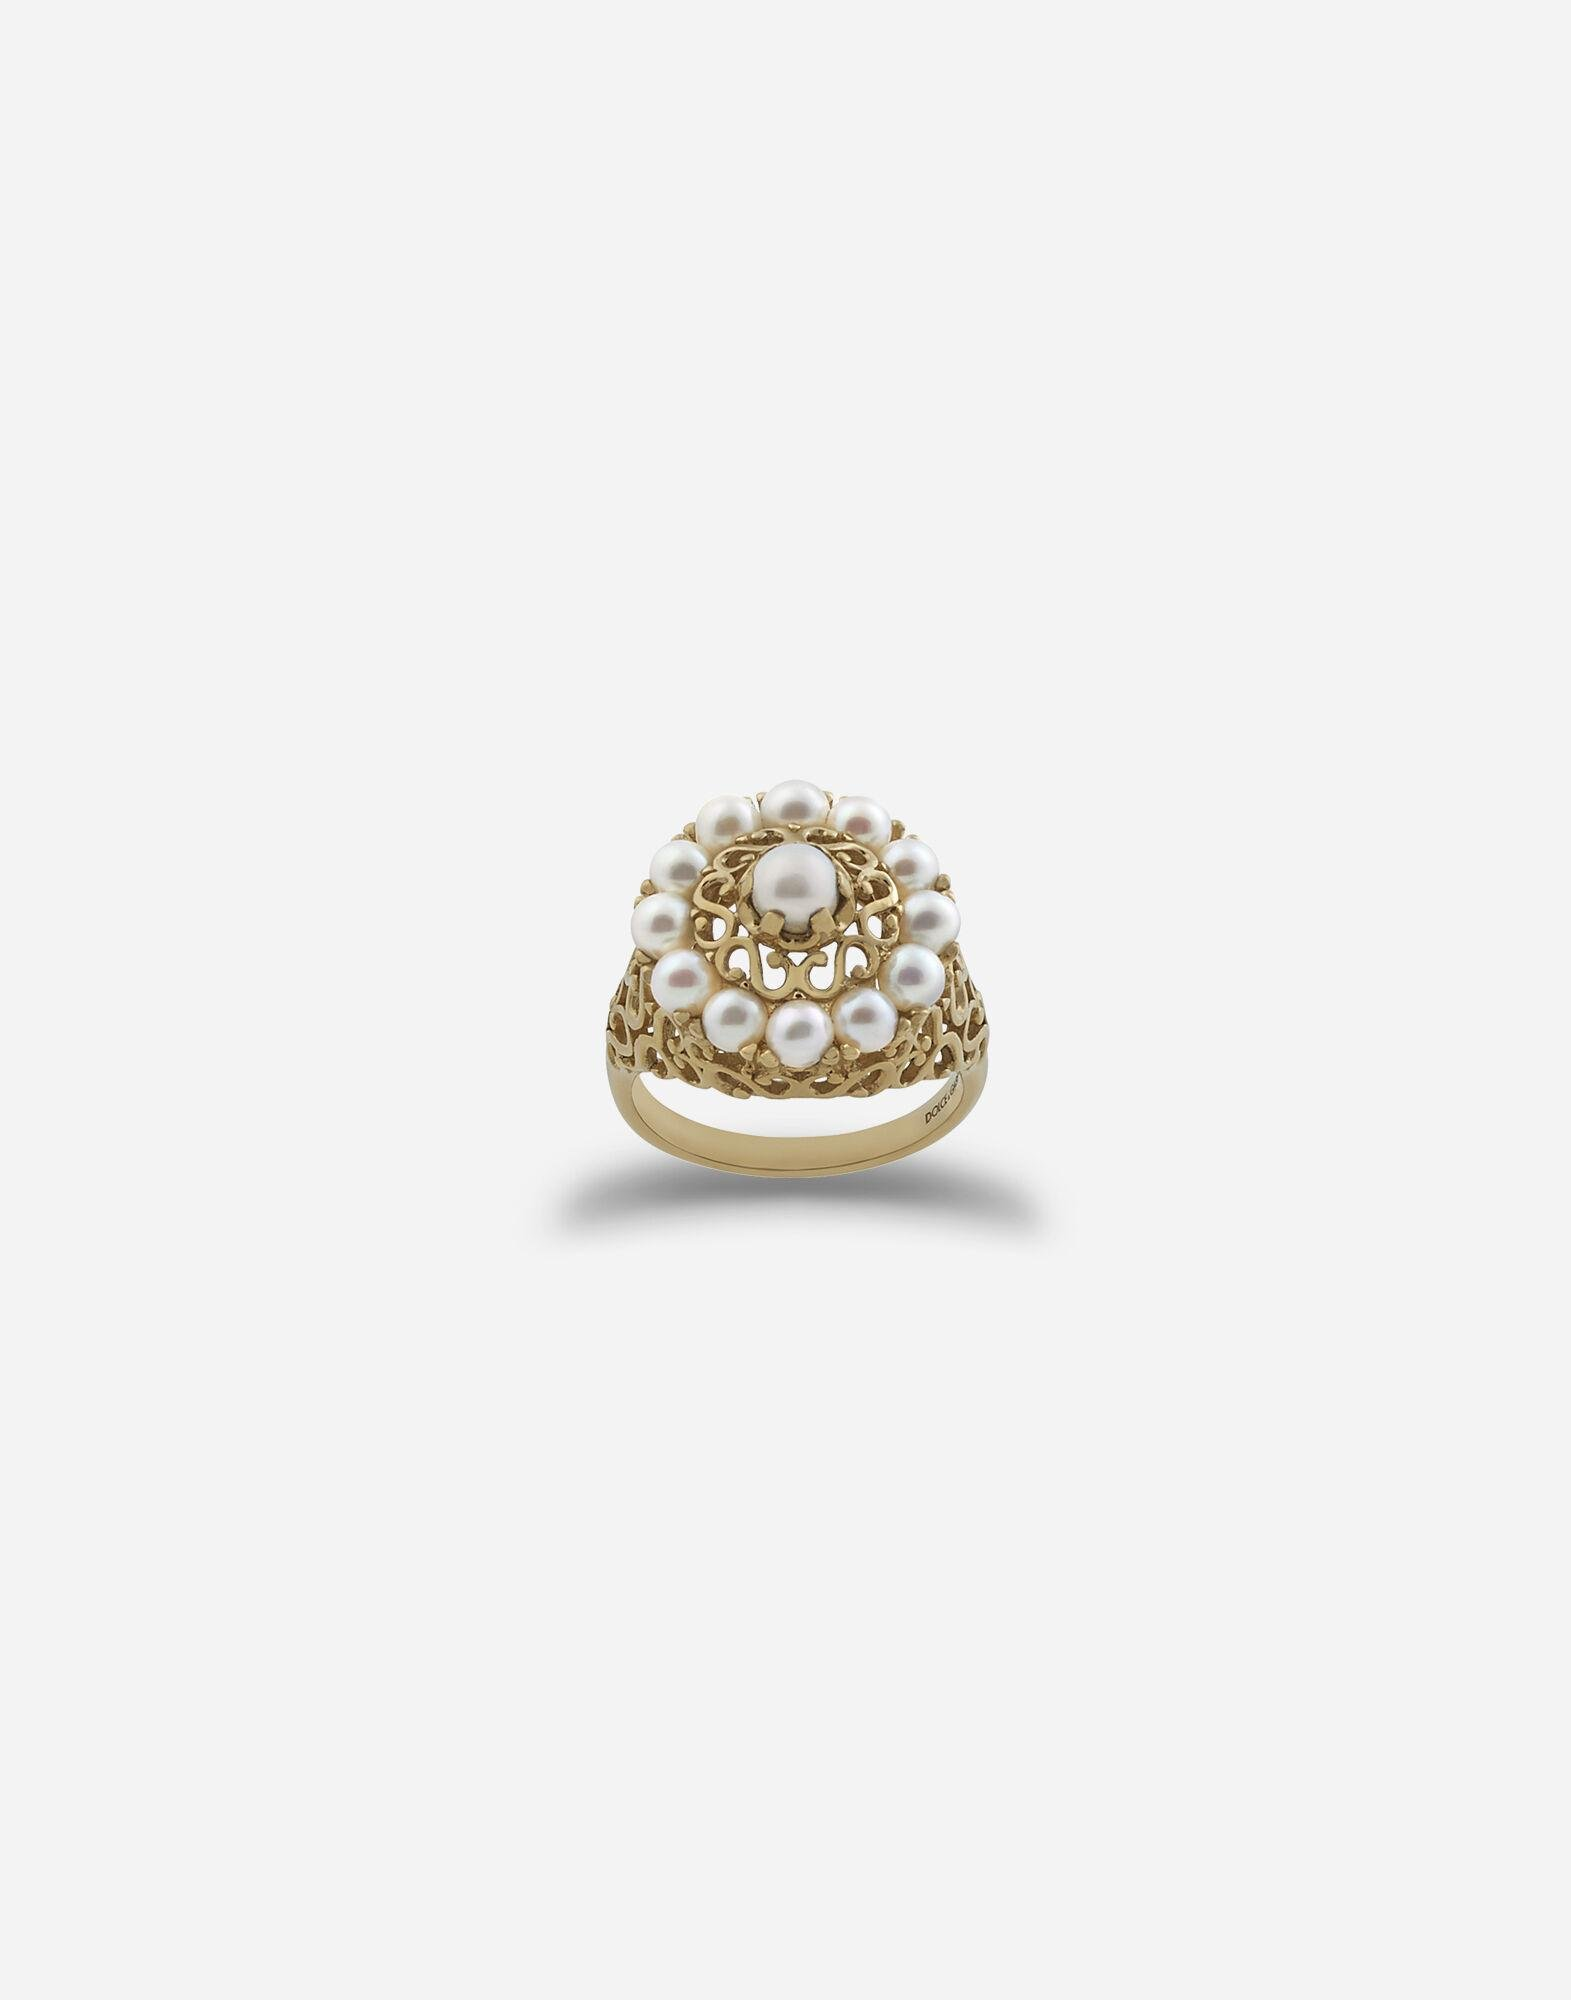 Romance ring in yellow gold and pearls